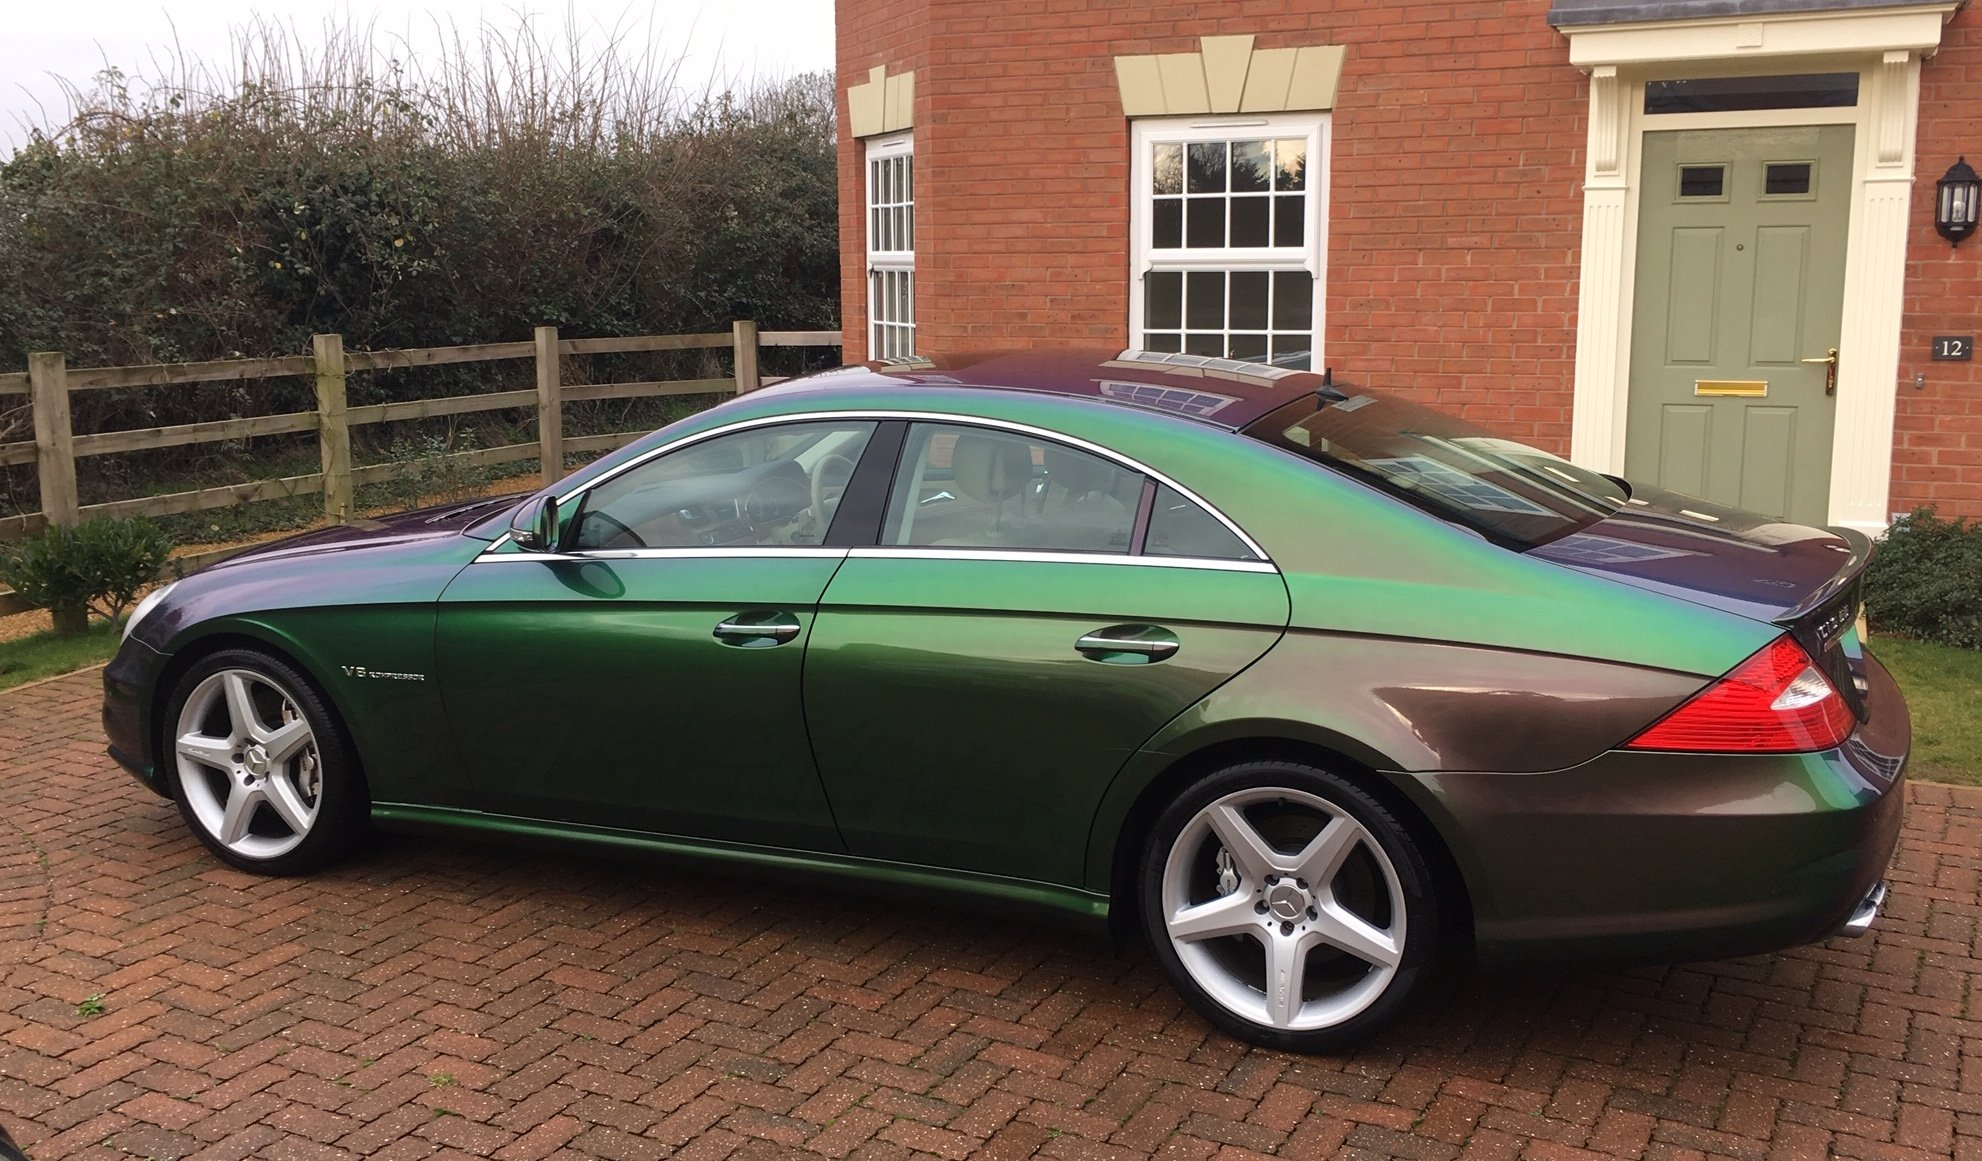 2006 Mercedes CLS 55 AMG V8 Supercharged 38k miles For Sale (picture 4 of 6)